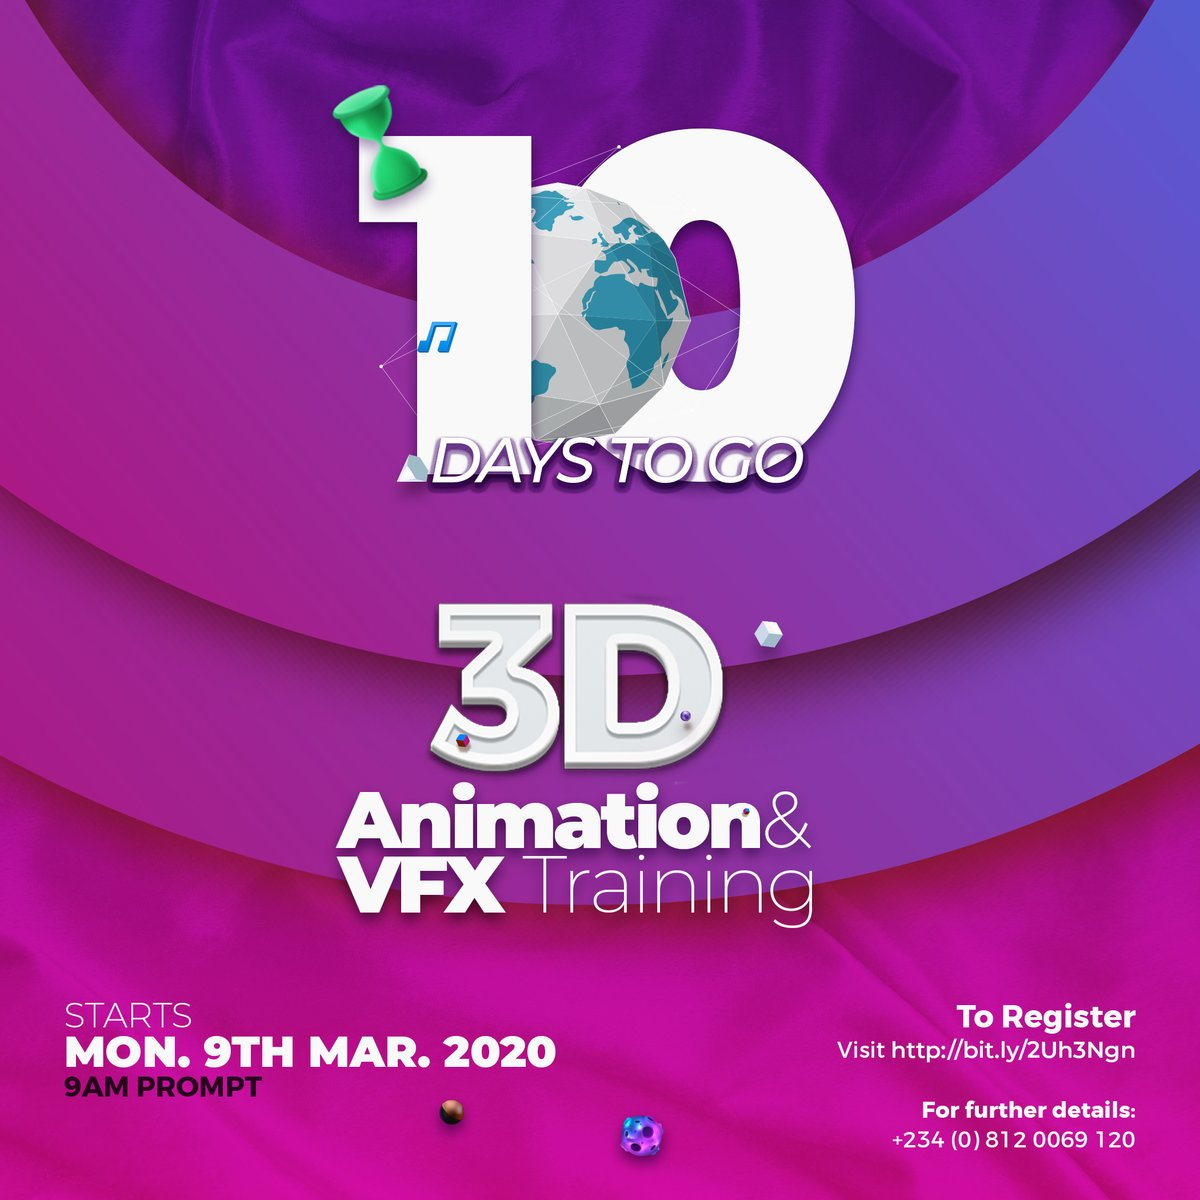 It's only 10 days away!  Hurry and register right now, right here!➡️➡️➡️  Join the winning team!  Tell a friend to tell a friend! 😉  #3d #3dmodelling #3DAnimation #3dcharacter #3ddesign #3dmodels #3danimator #blender3d